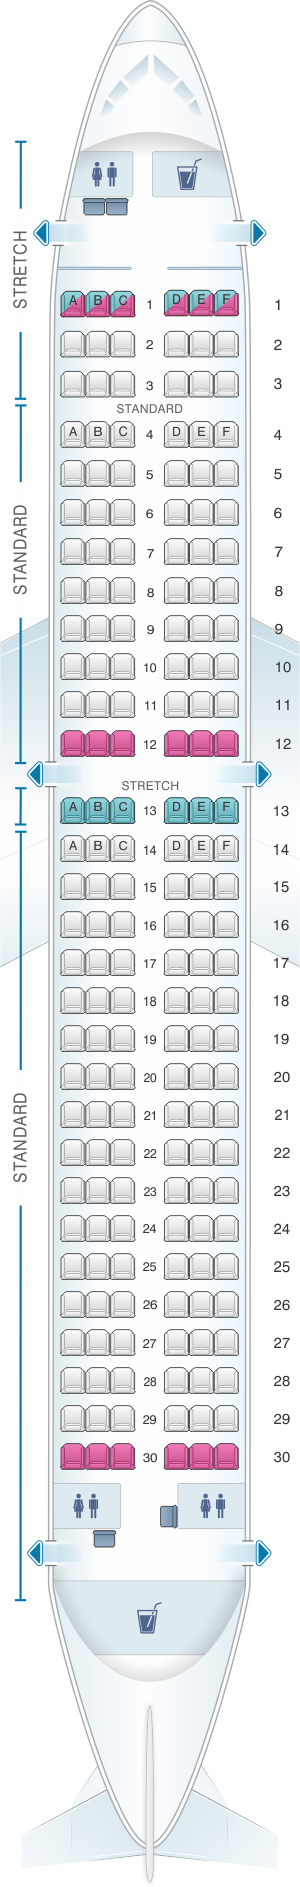 frontier airlines plane seating chart